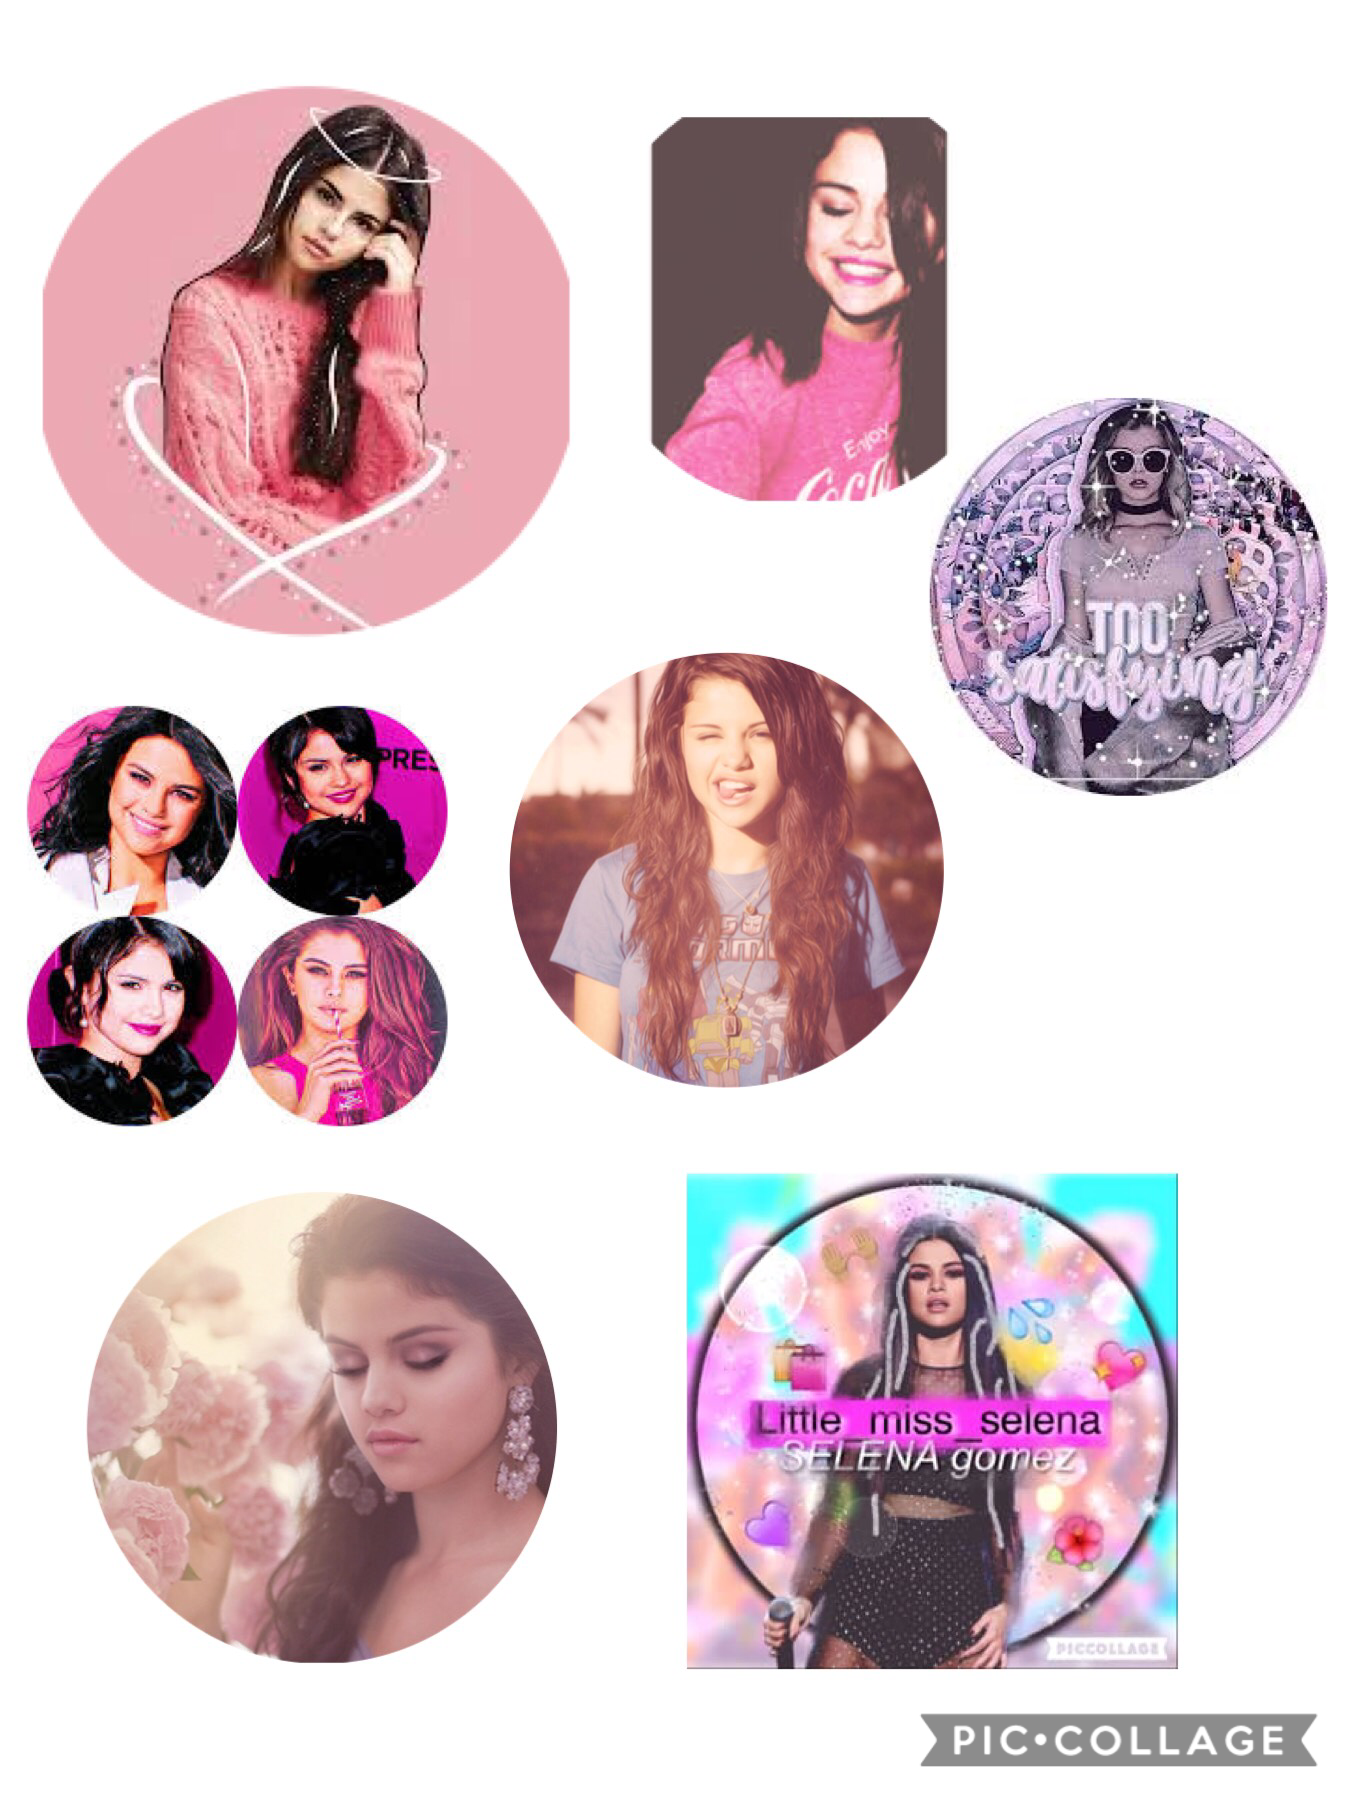 Selena Gomez icons. Make sure to tell shyannjoiner thank you, if you do keep a icon, she got the question right.